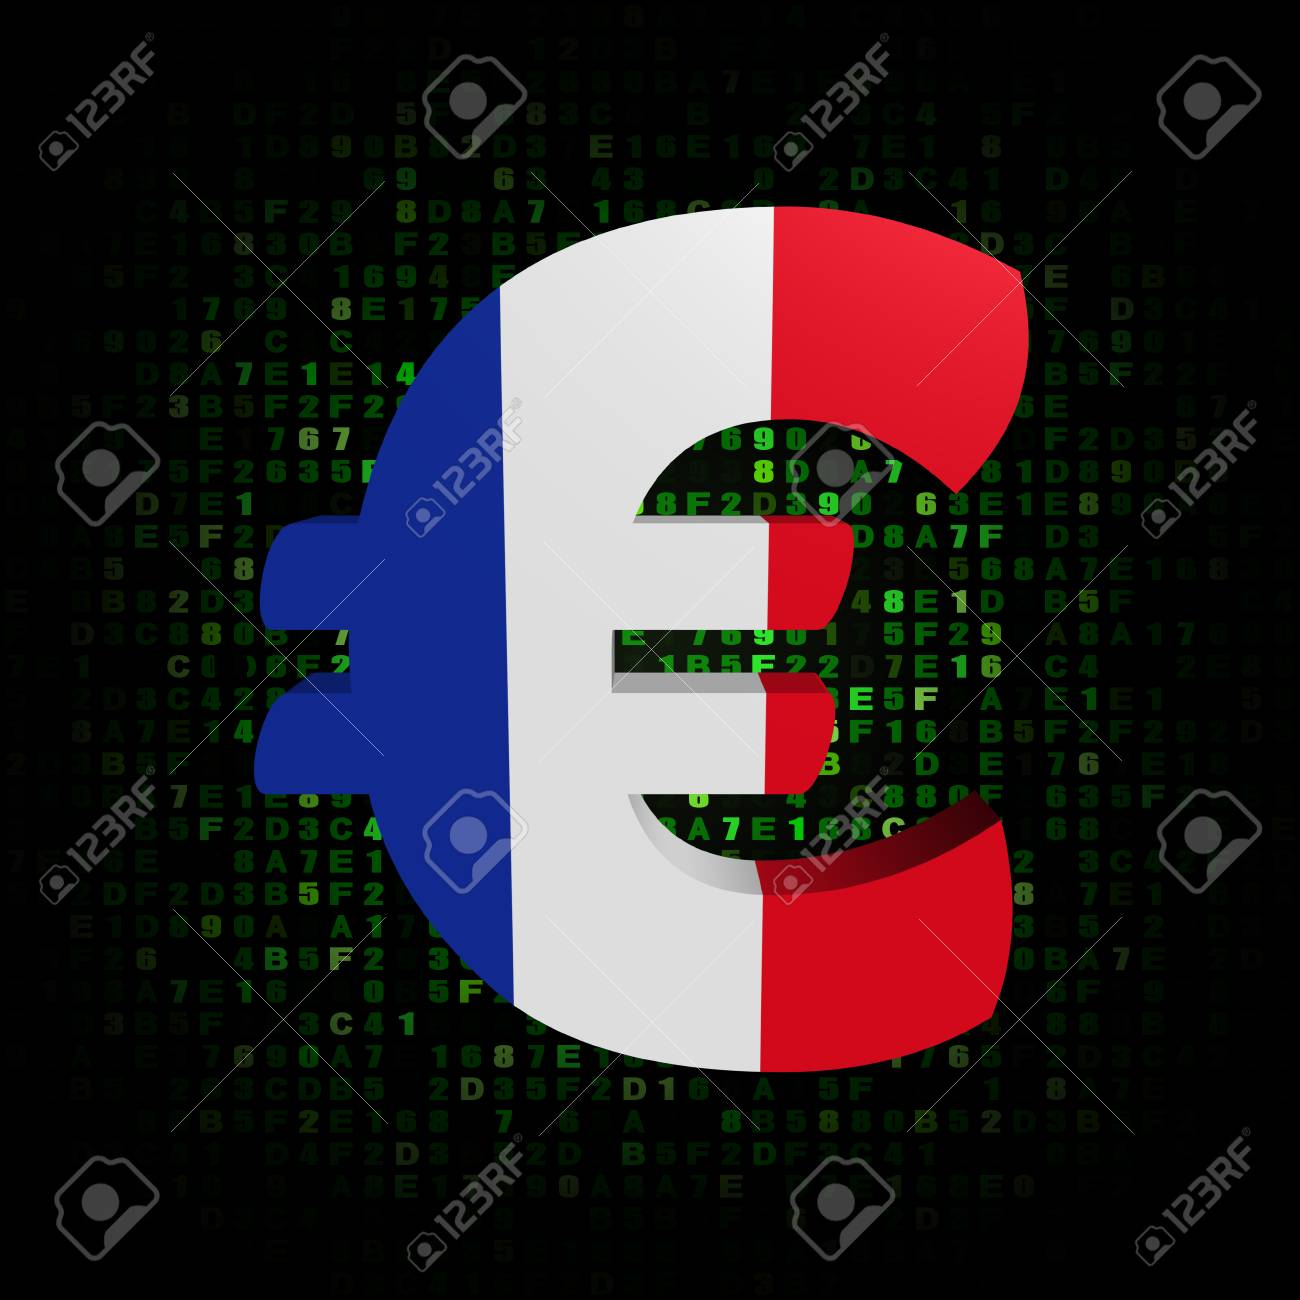 Euro Symbol With French Flag On Hex Code Illustration Stock Photo